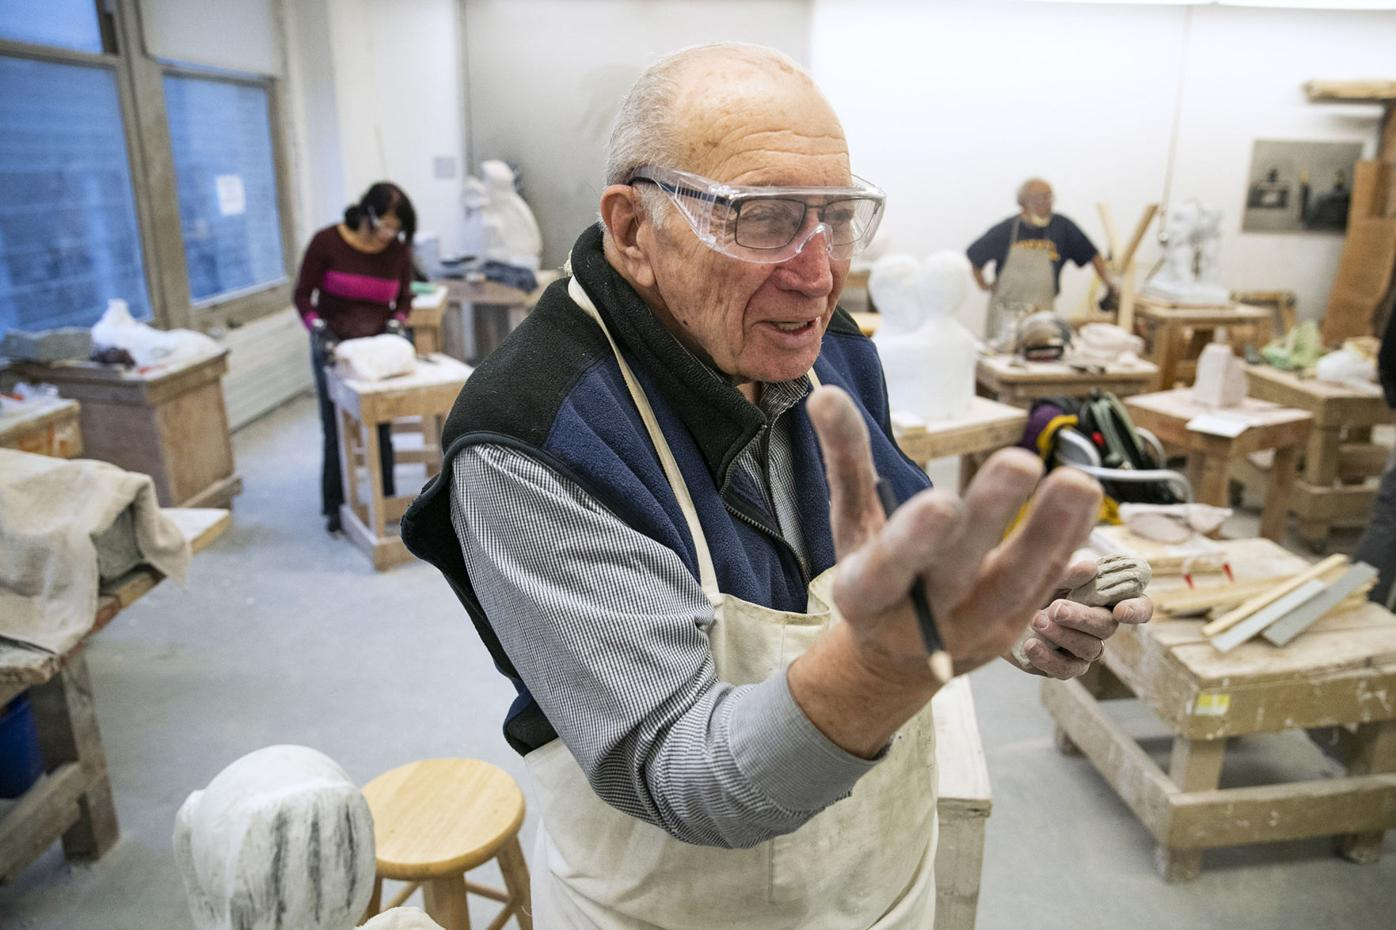 At 87, this physician to spinal cord injury patients finds hope in sculpting